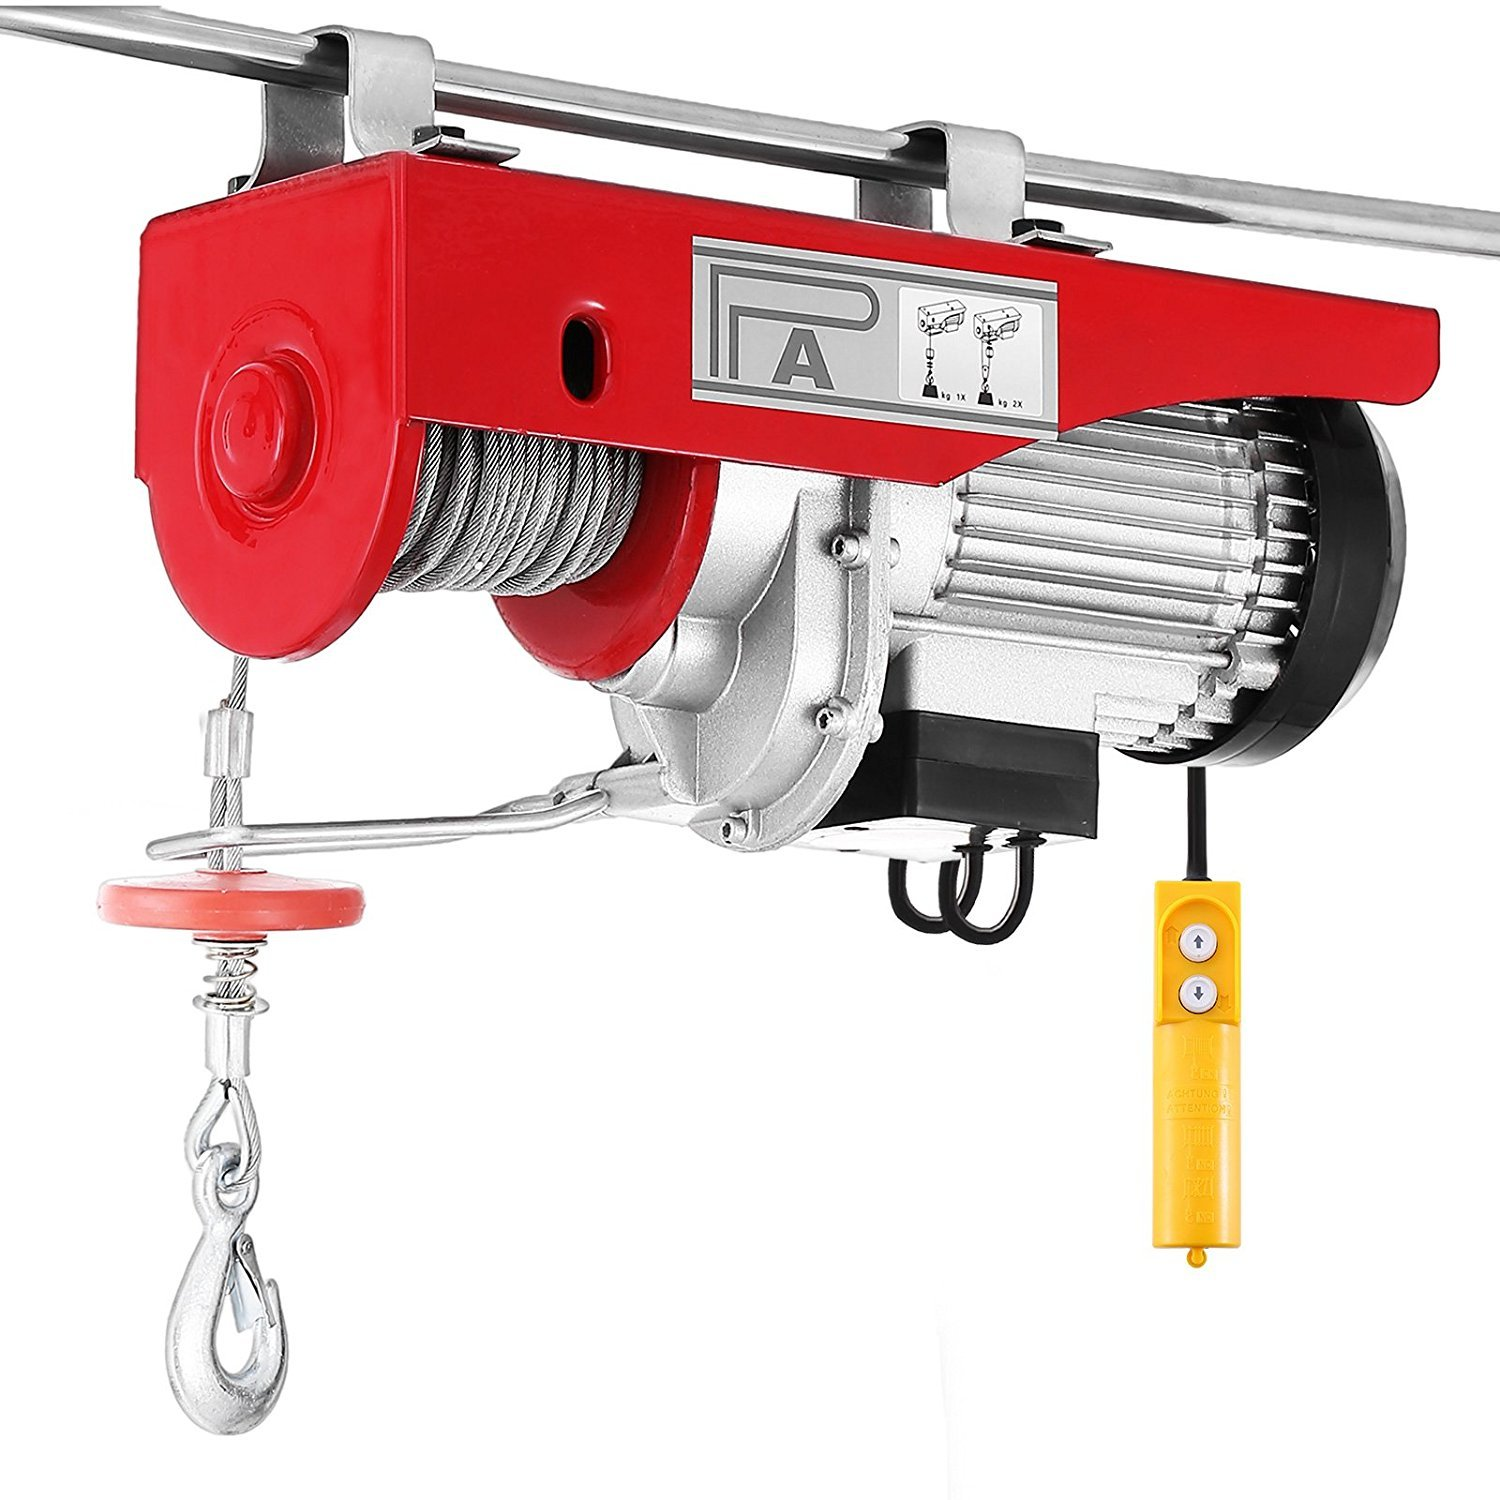 Ztopia Electric Hoist Lift 12M 680KG Overhead Electric Hoist 750LBS Electric Wire Hoist 220V Remote Control Garage Auto Shop Overhead Lift (680KG)